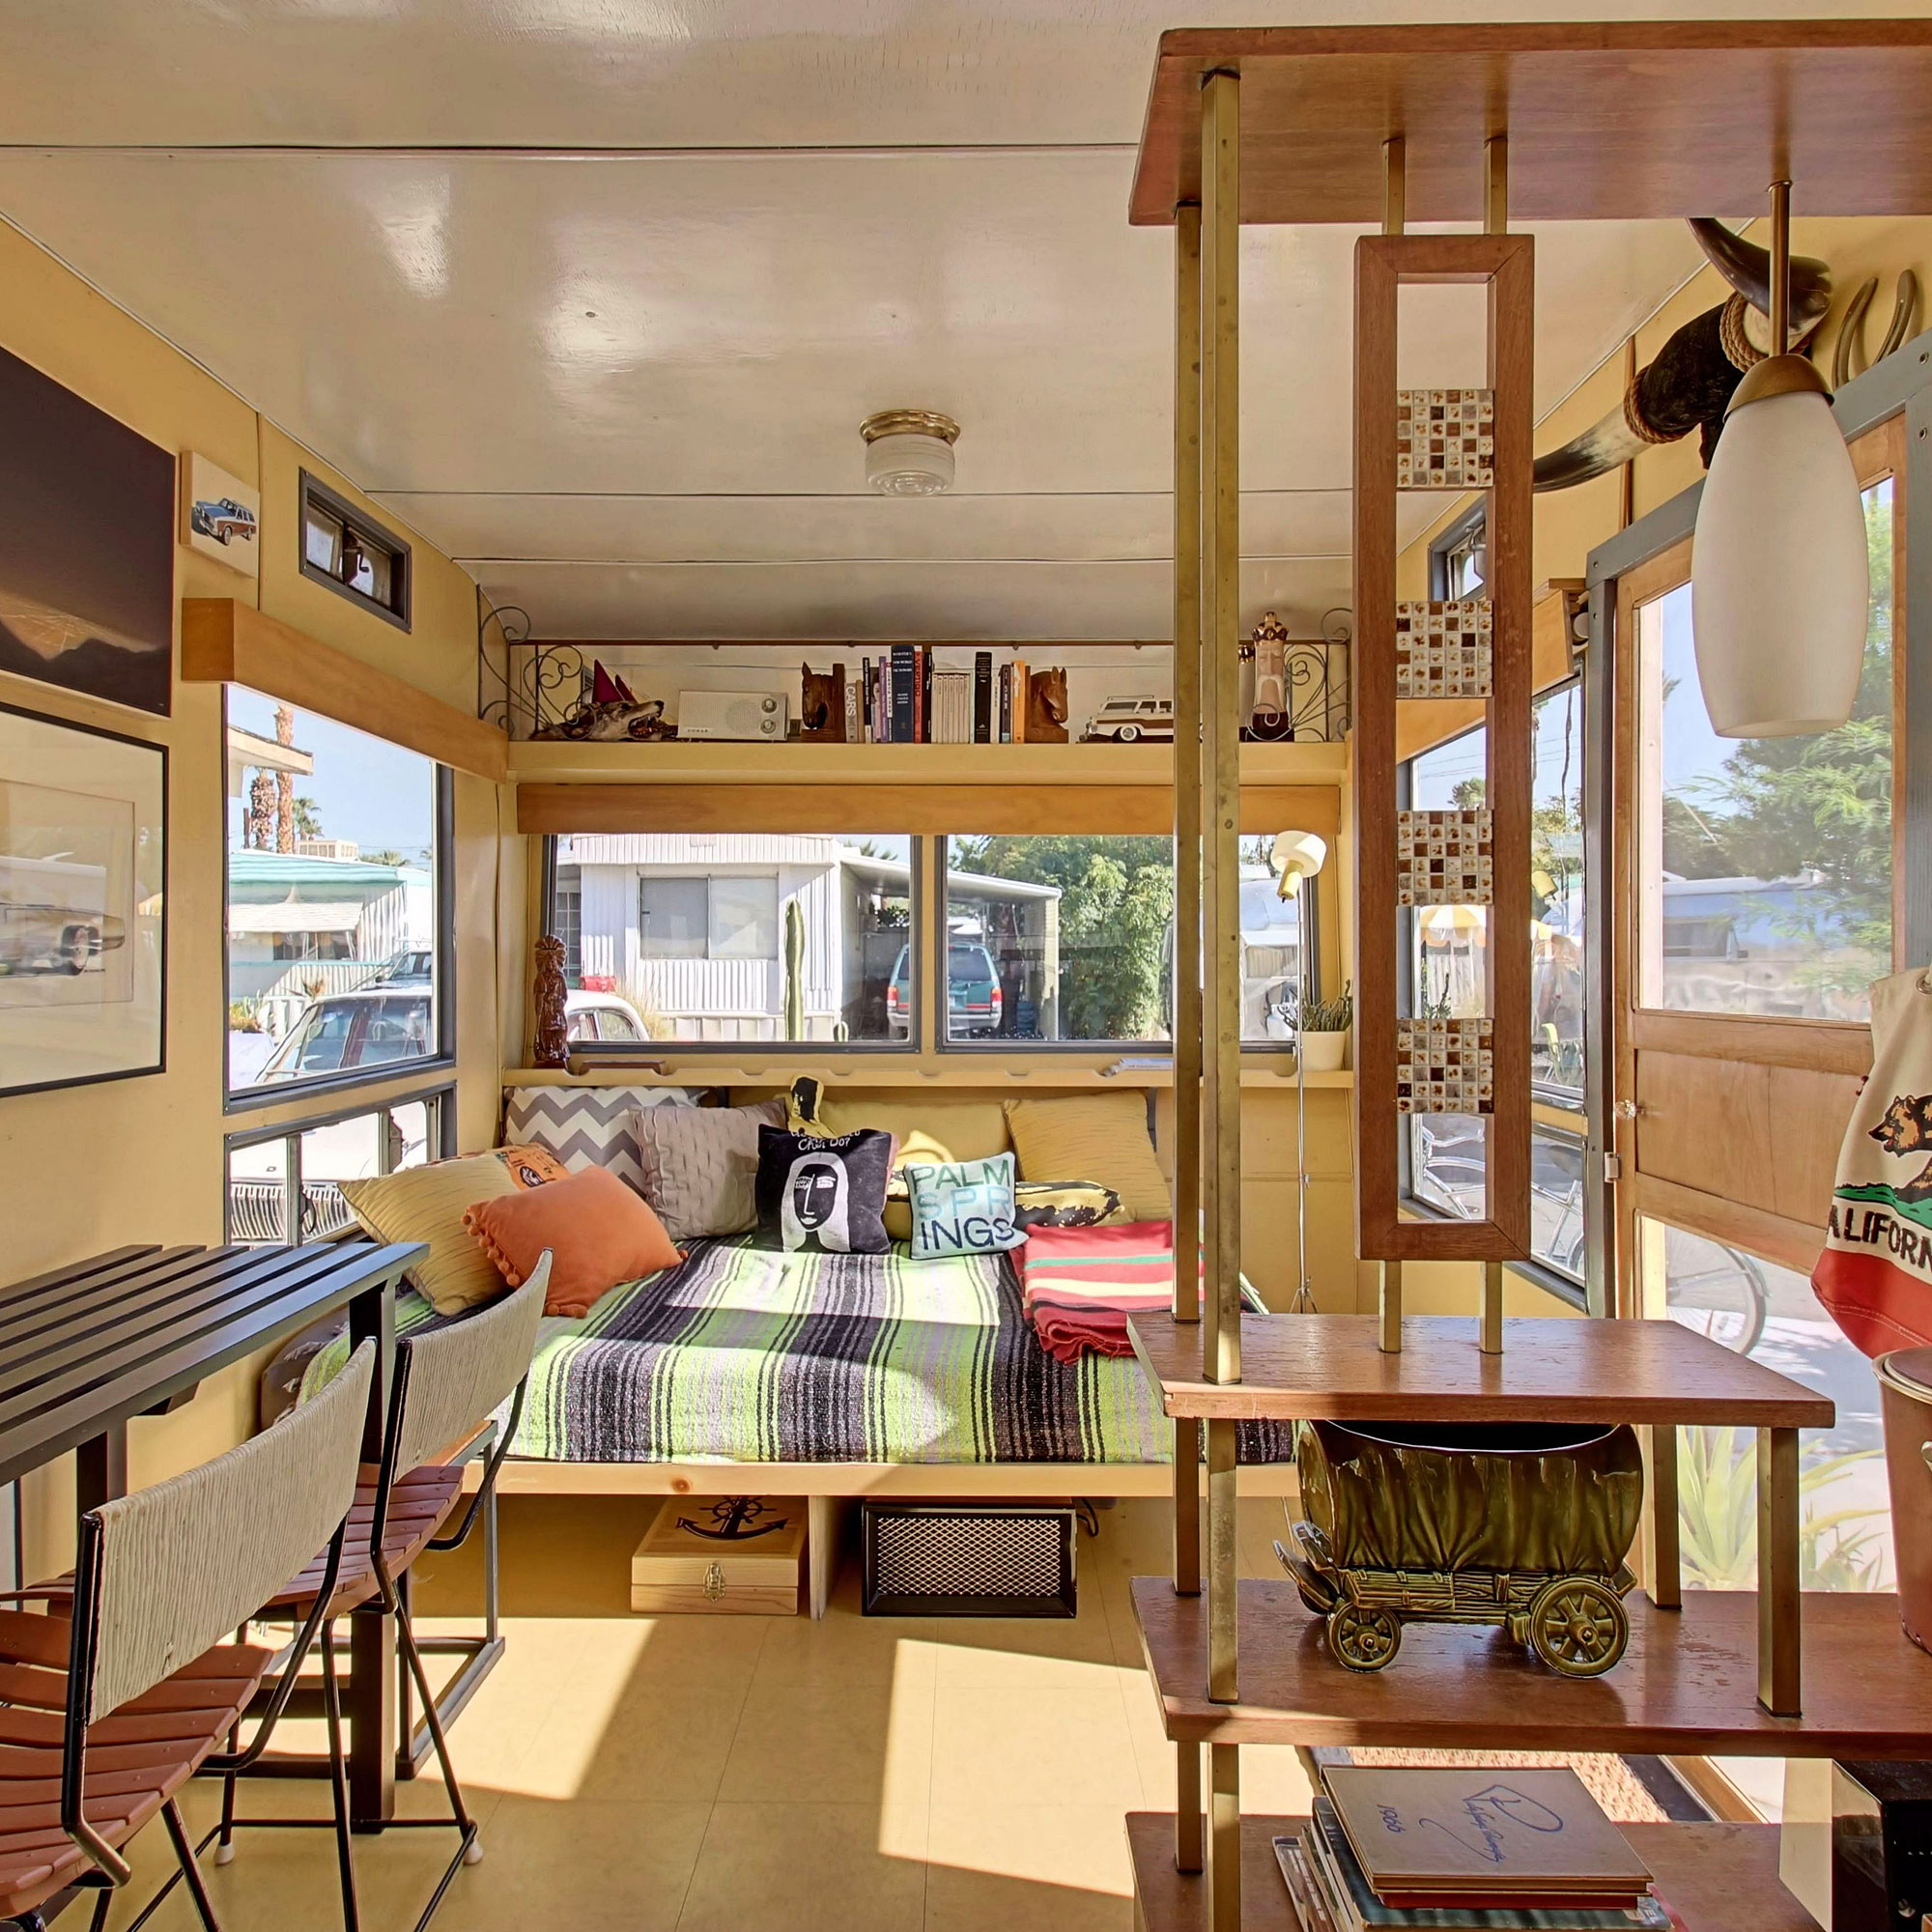 Trailer Homes: 7 Vintage Trailer Homes To Crush On